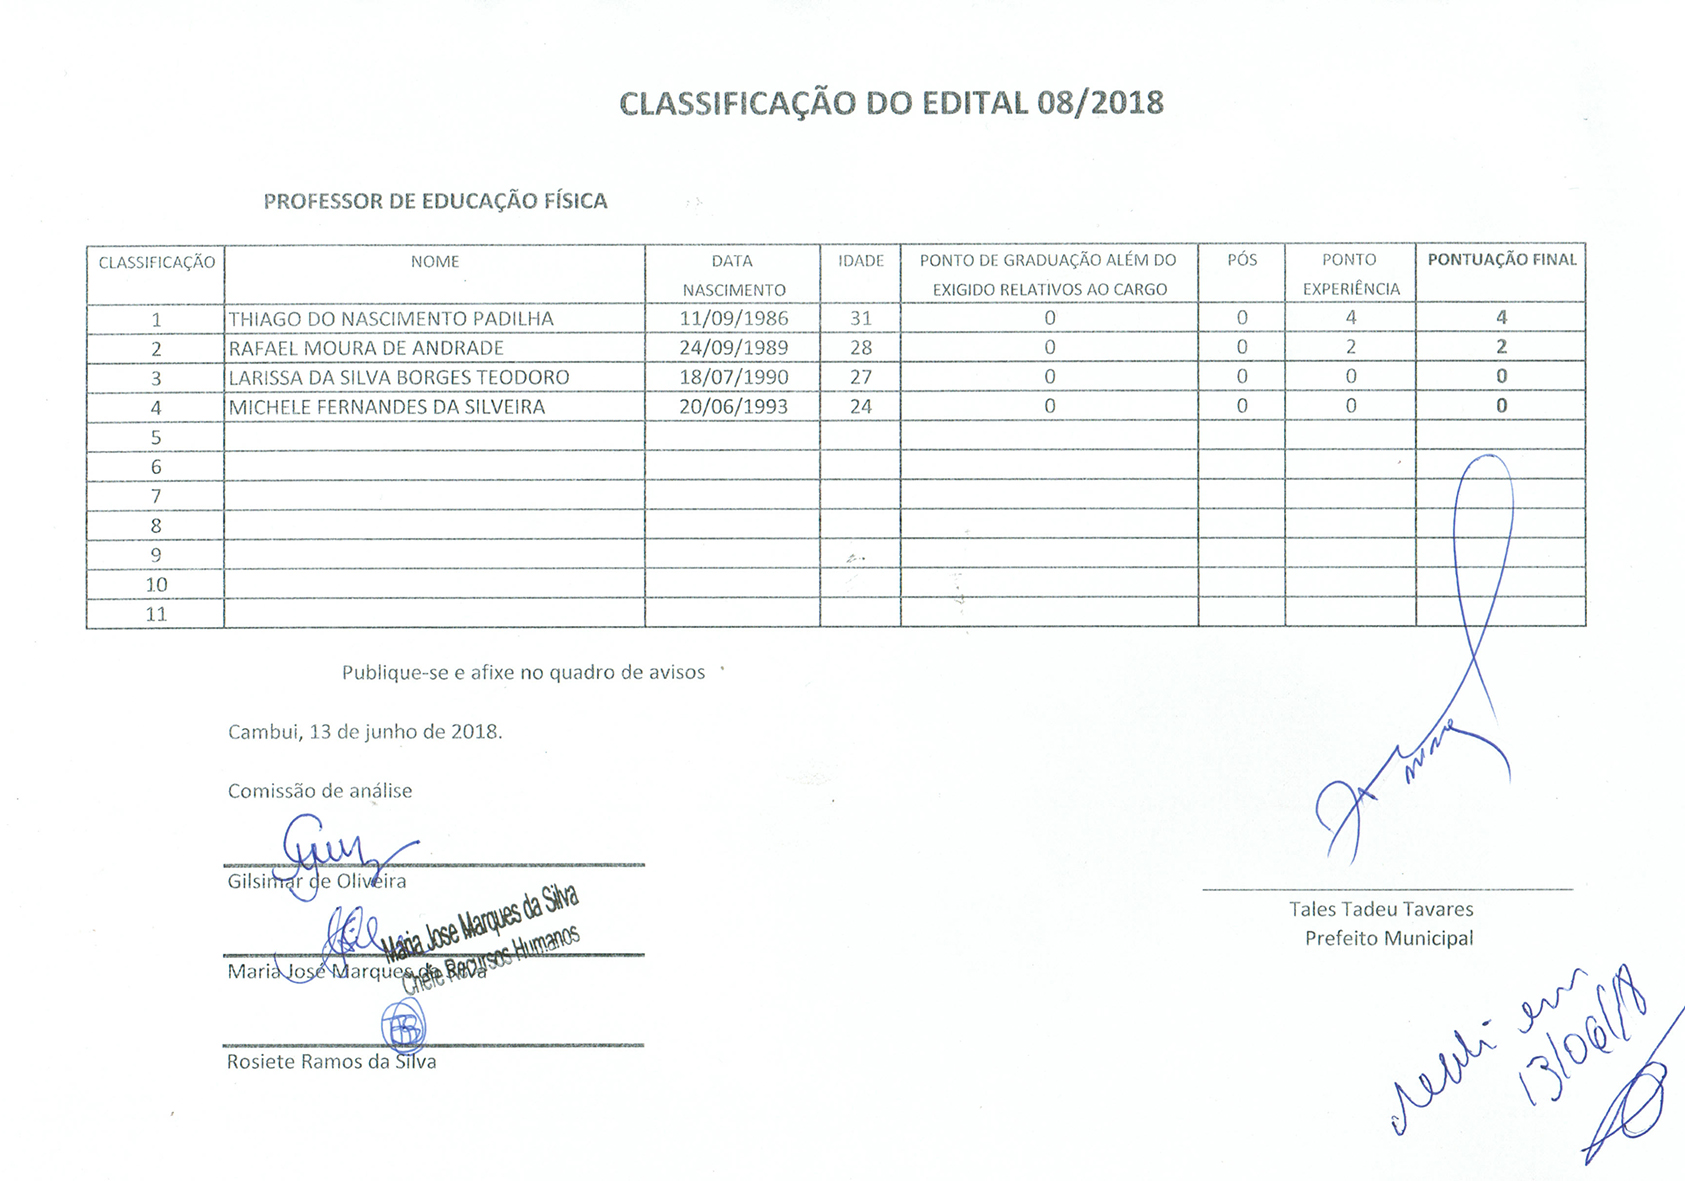 classificacaoed08